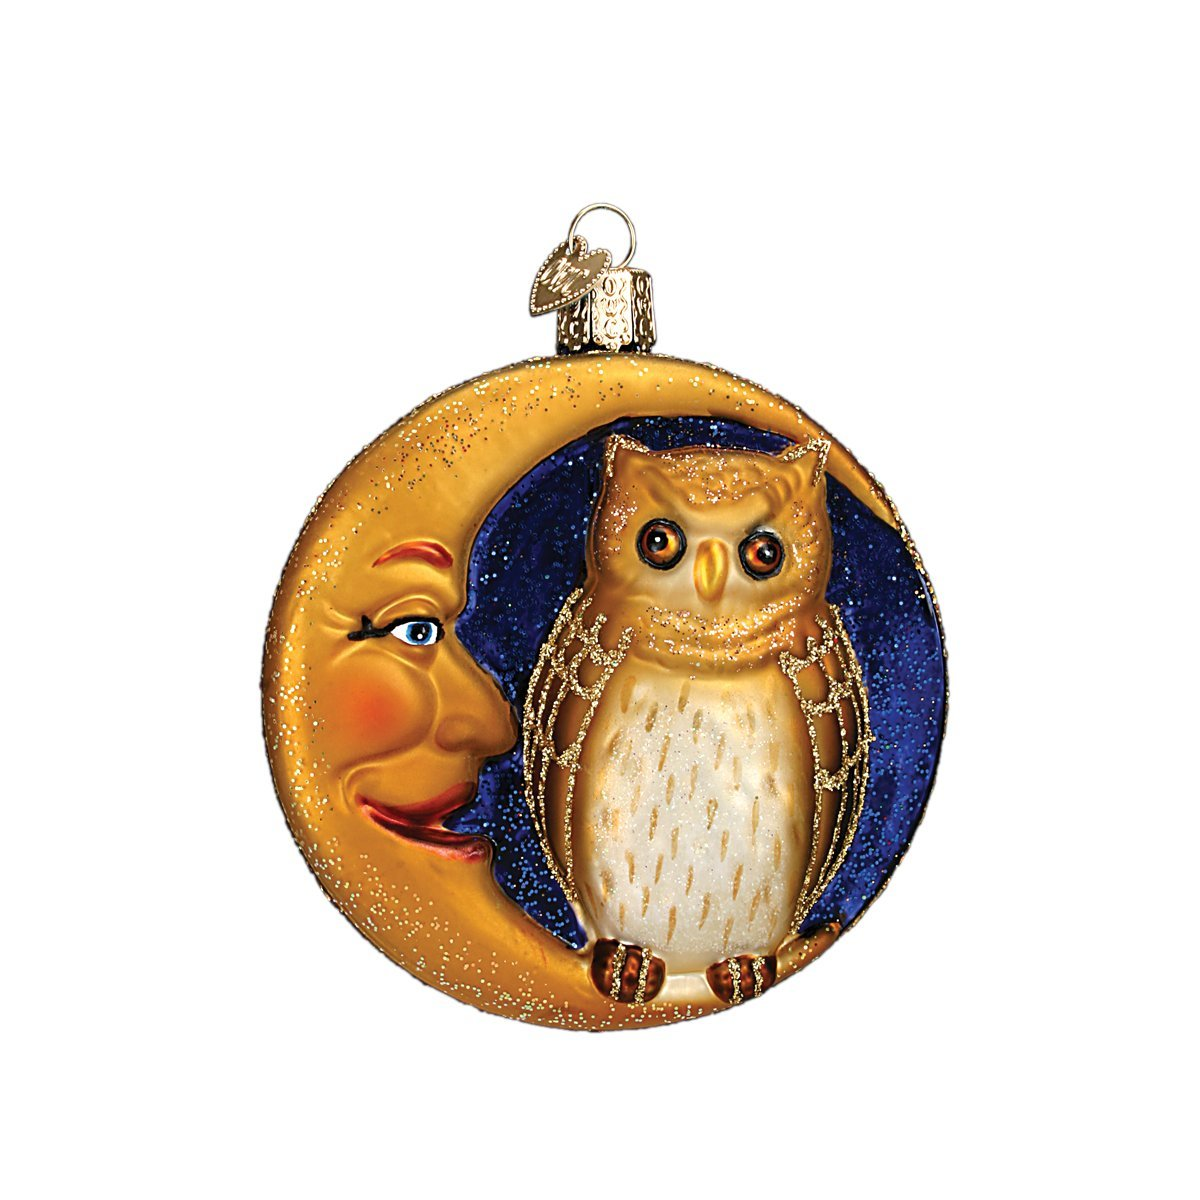 Old World Christmas Ornaments: Owl in Moon Glass Blown Ornaments for Christmas Tree